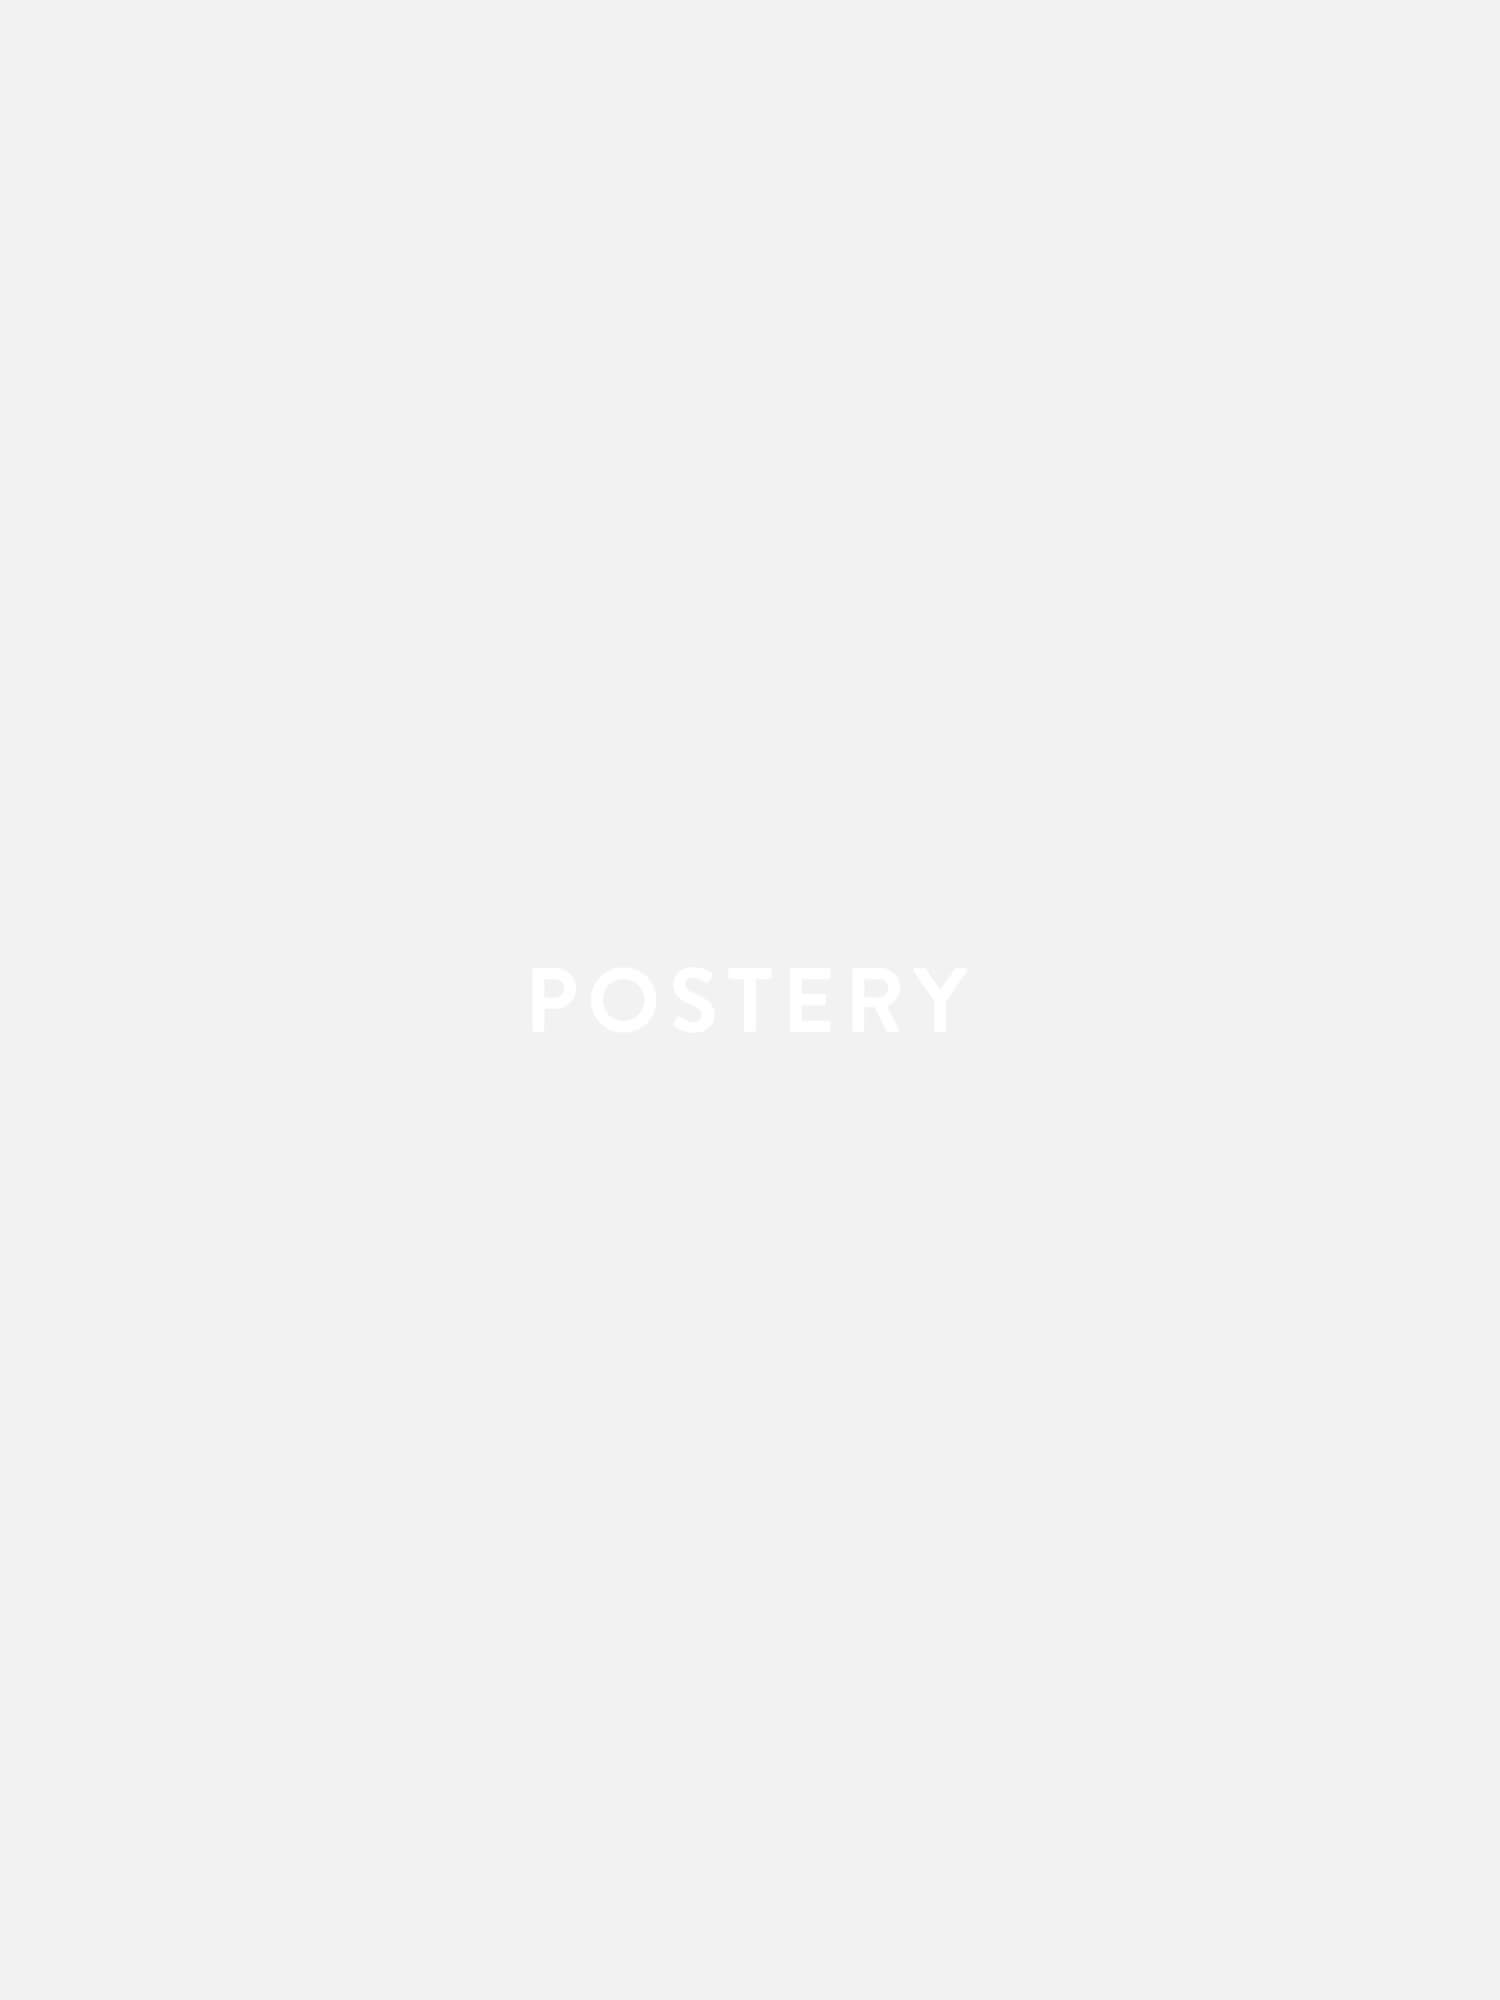 Gallery Wall #6948